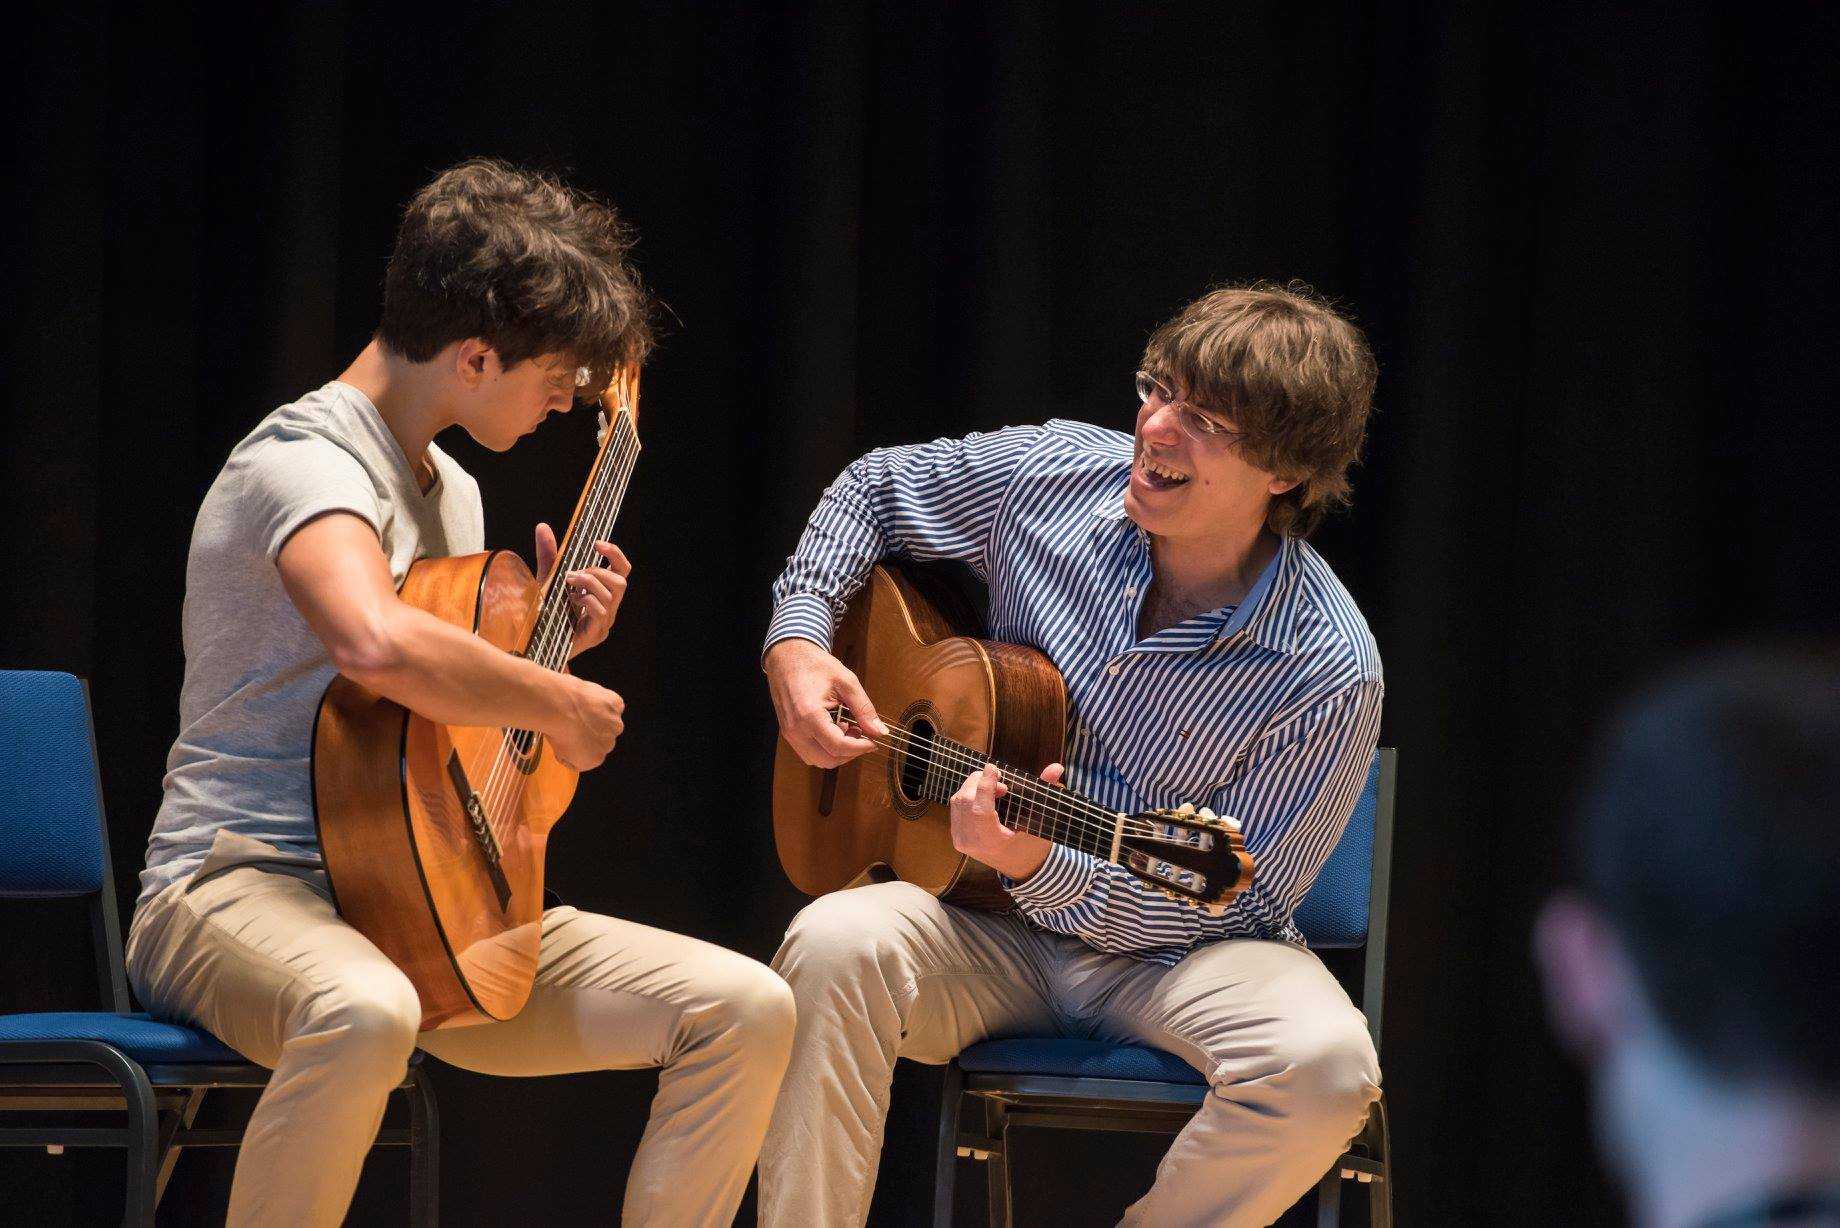 student and teacher on stage at guitarfest